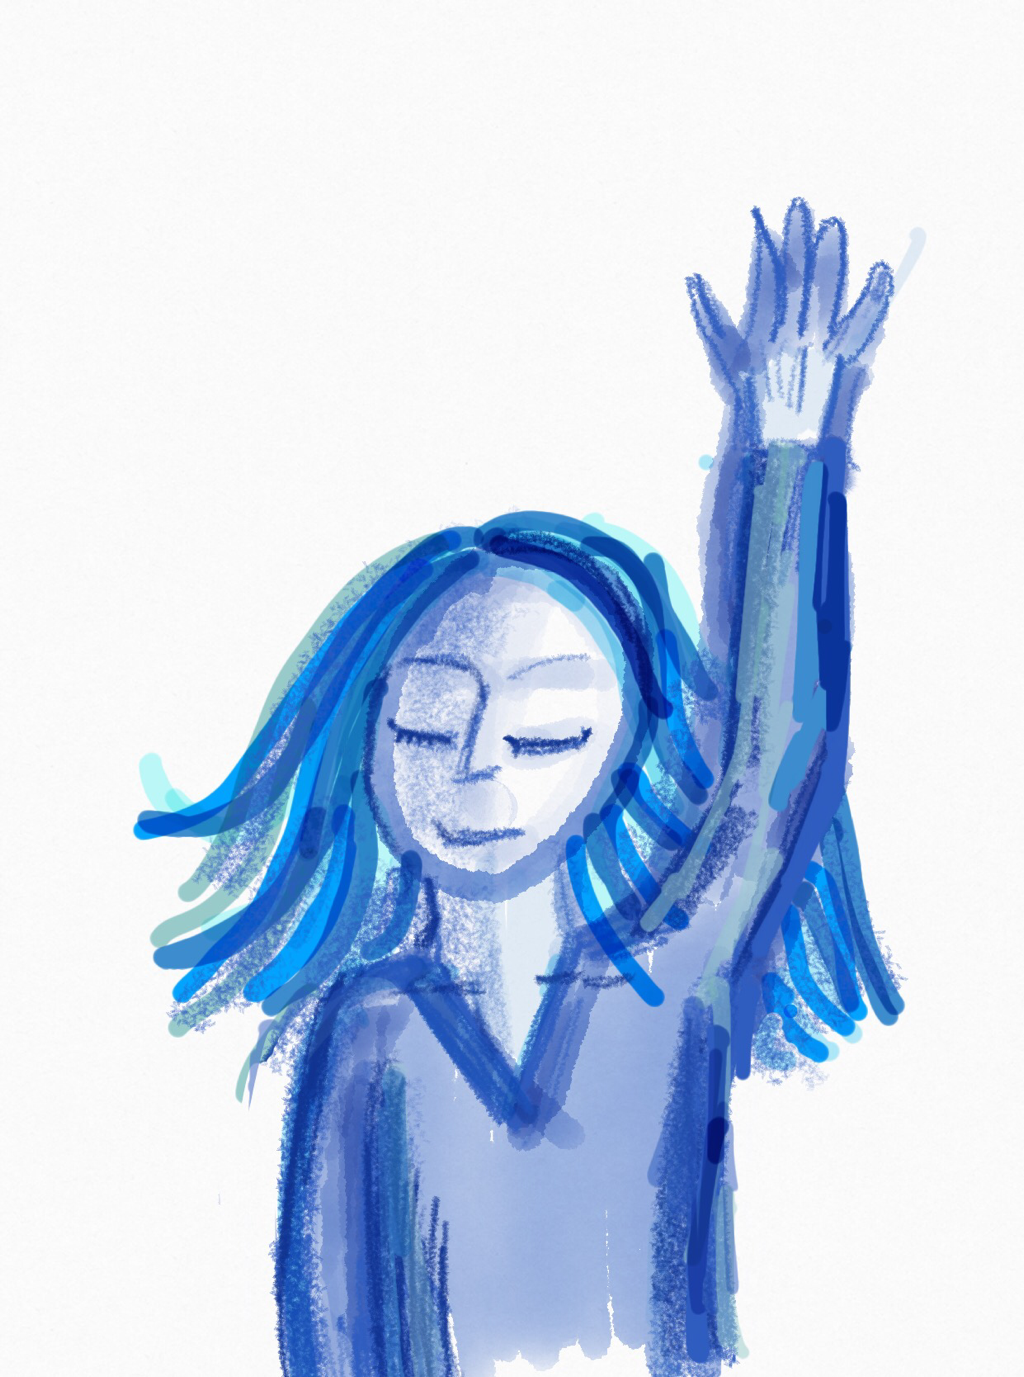 Hand drawn in shades of blue a girl holds up her hand